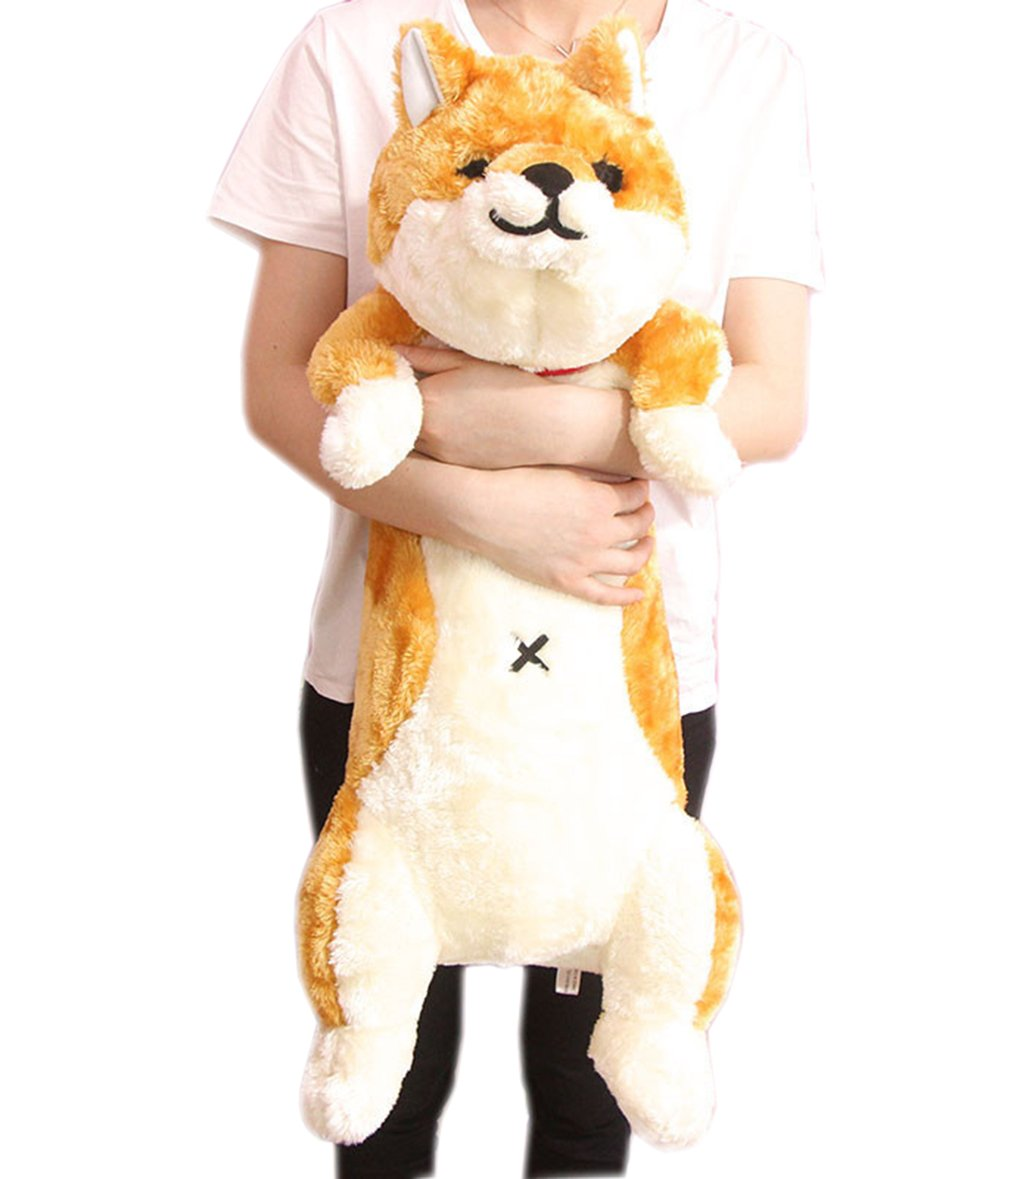 Lcoco&Dream Cute Plush Toys Pillows Giant Stuffed Animals Dog of Shiba Inu Length 33 Inches Gold